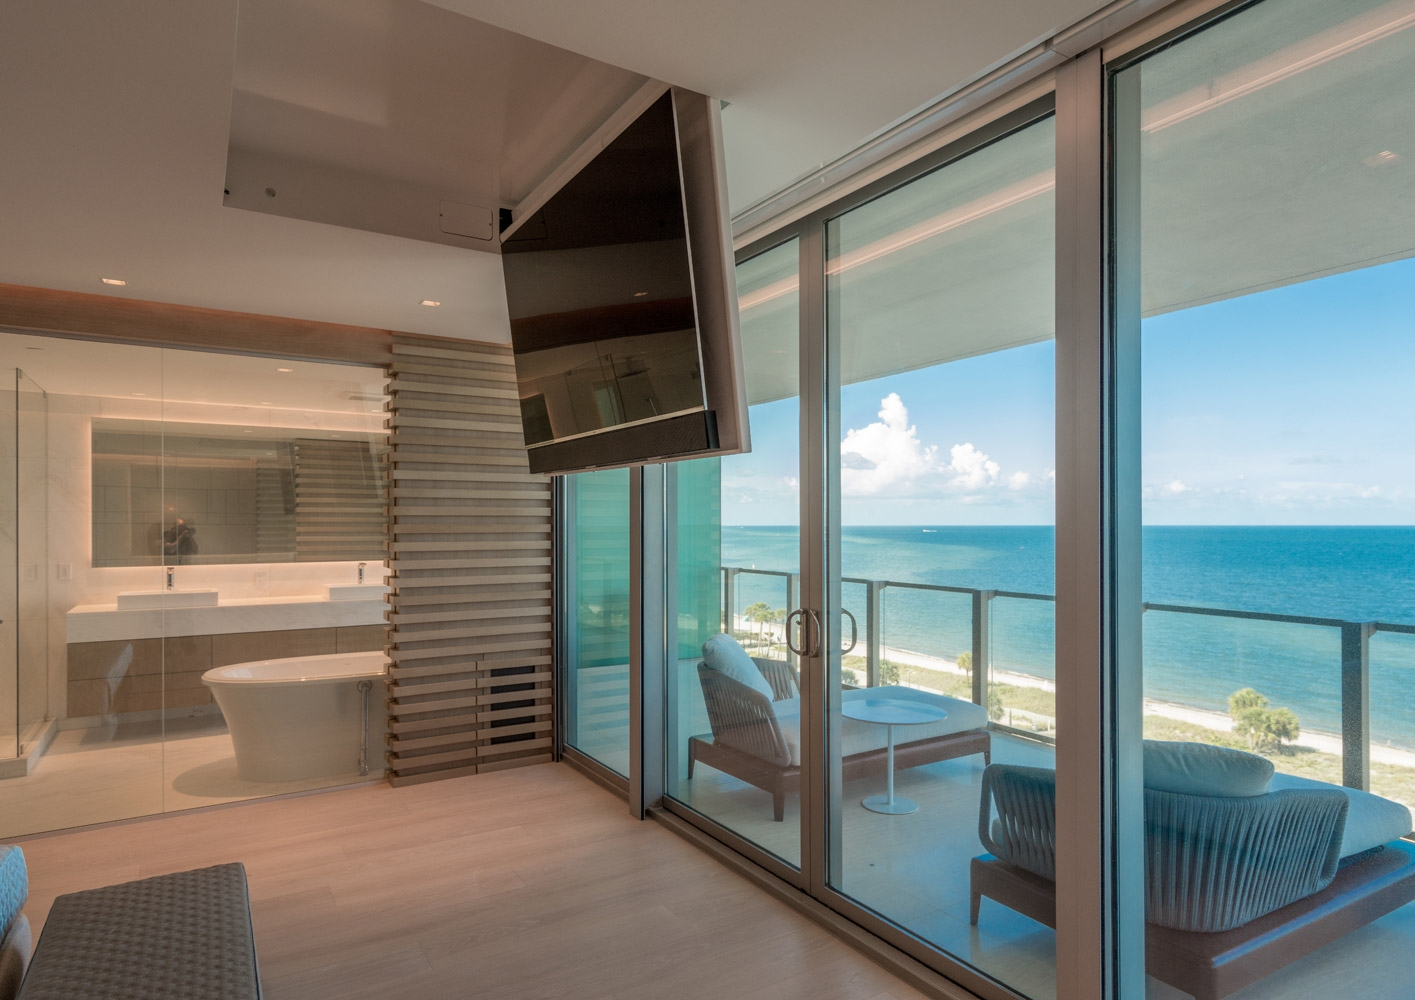 KEY BISCAYNE, RESIDENTIAL PROJECT | INTERIORS & CONTRACT - EN on edgewater house plans, whispering pines house plans, boca raton house plans, little river house plans, new york house plans, bartram springs house plans, ocean house plans,